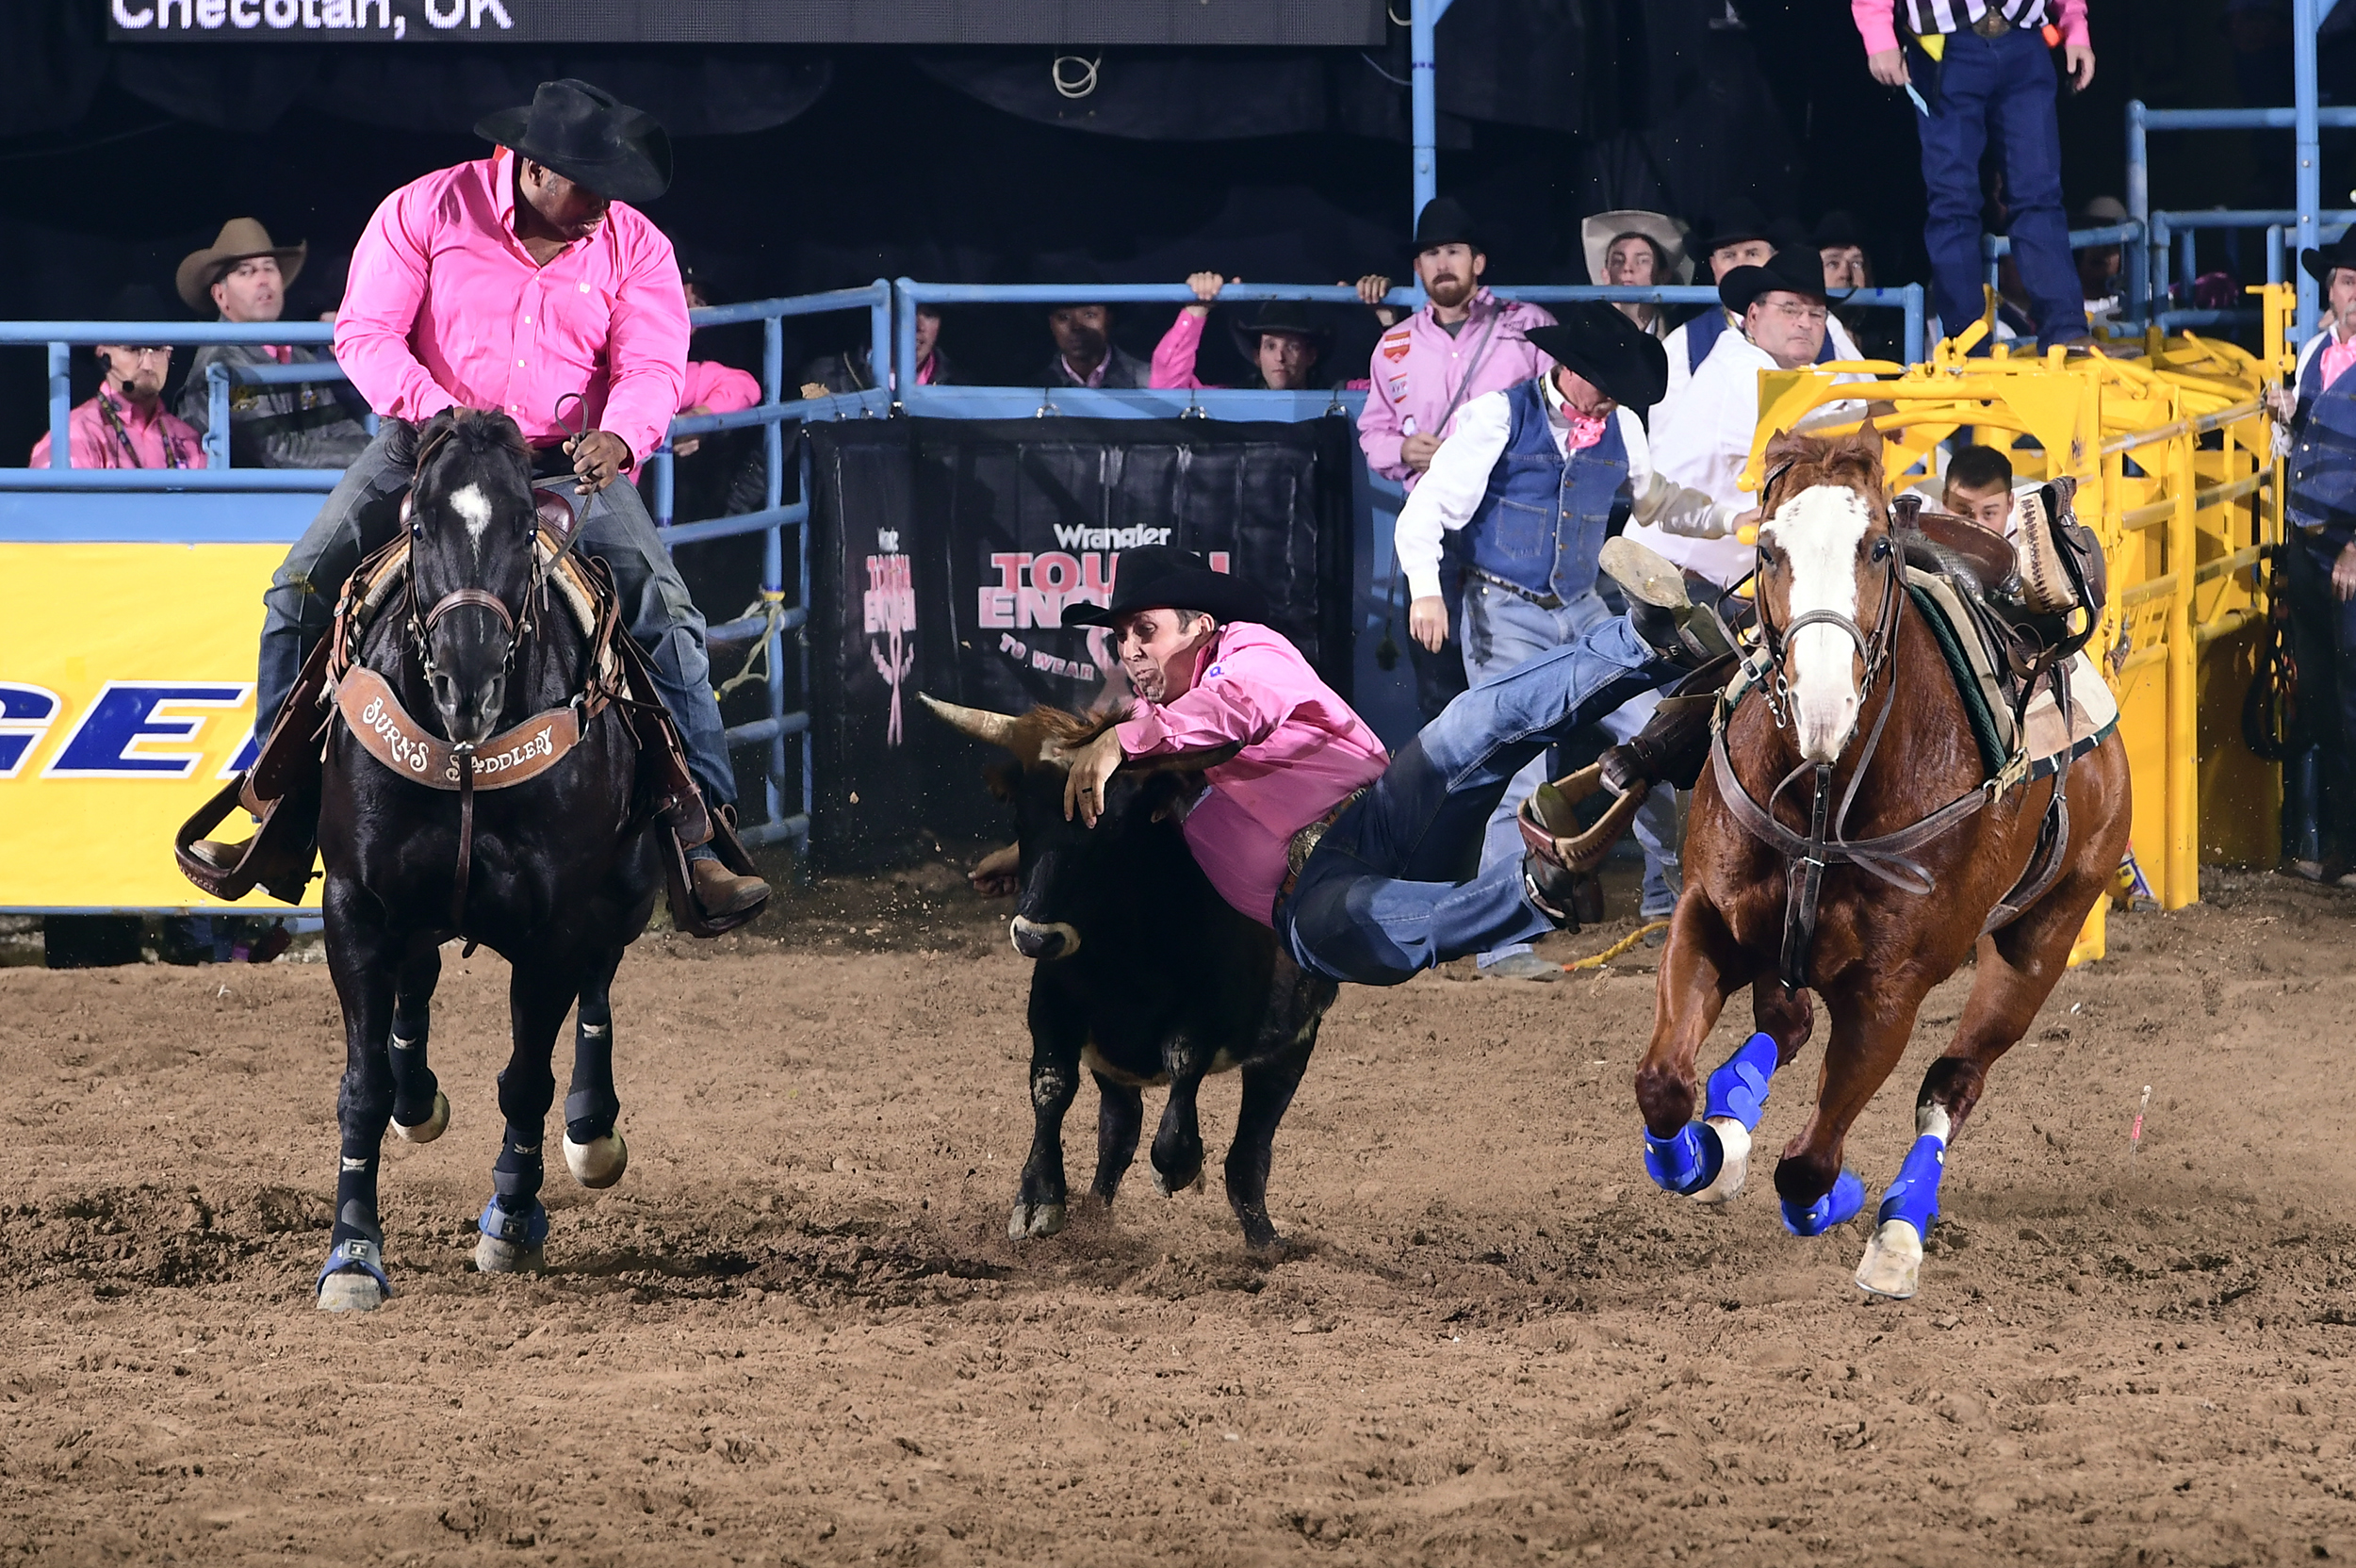 Riley Duvall will ride into Las Vegas for his third National Finals Rodeo qualification as the No. 7-ranked steer wrestler in the world standings. (PHOTO BY JAMES PHIFER)